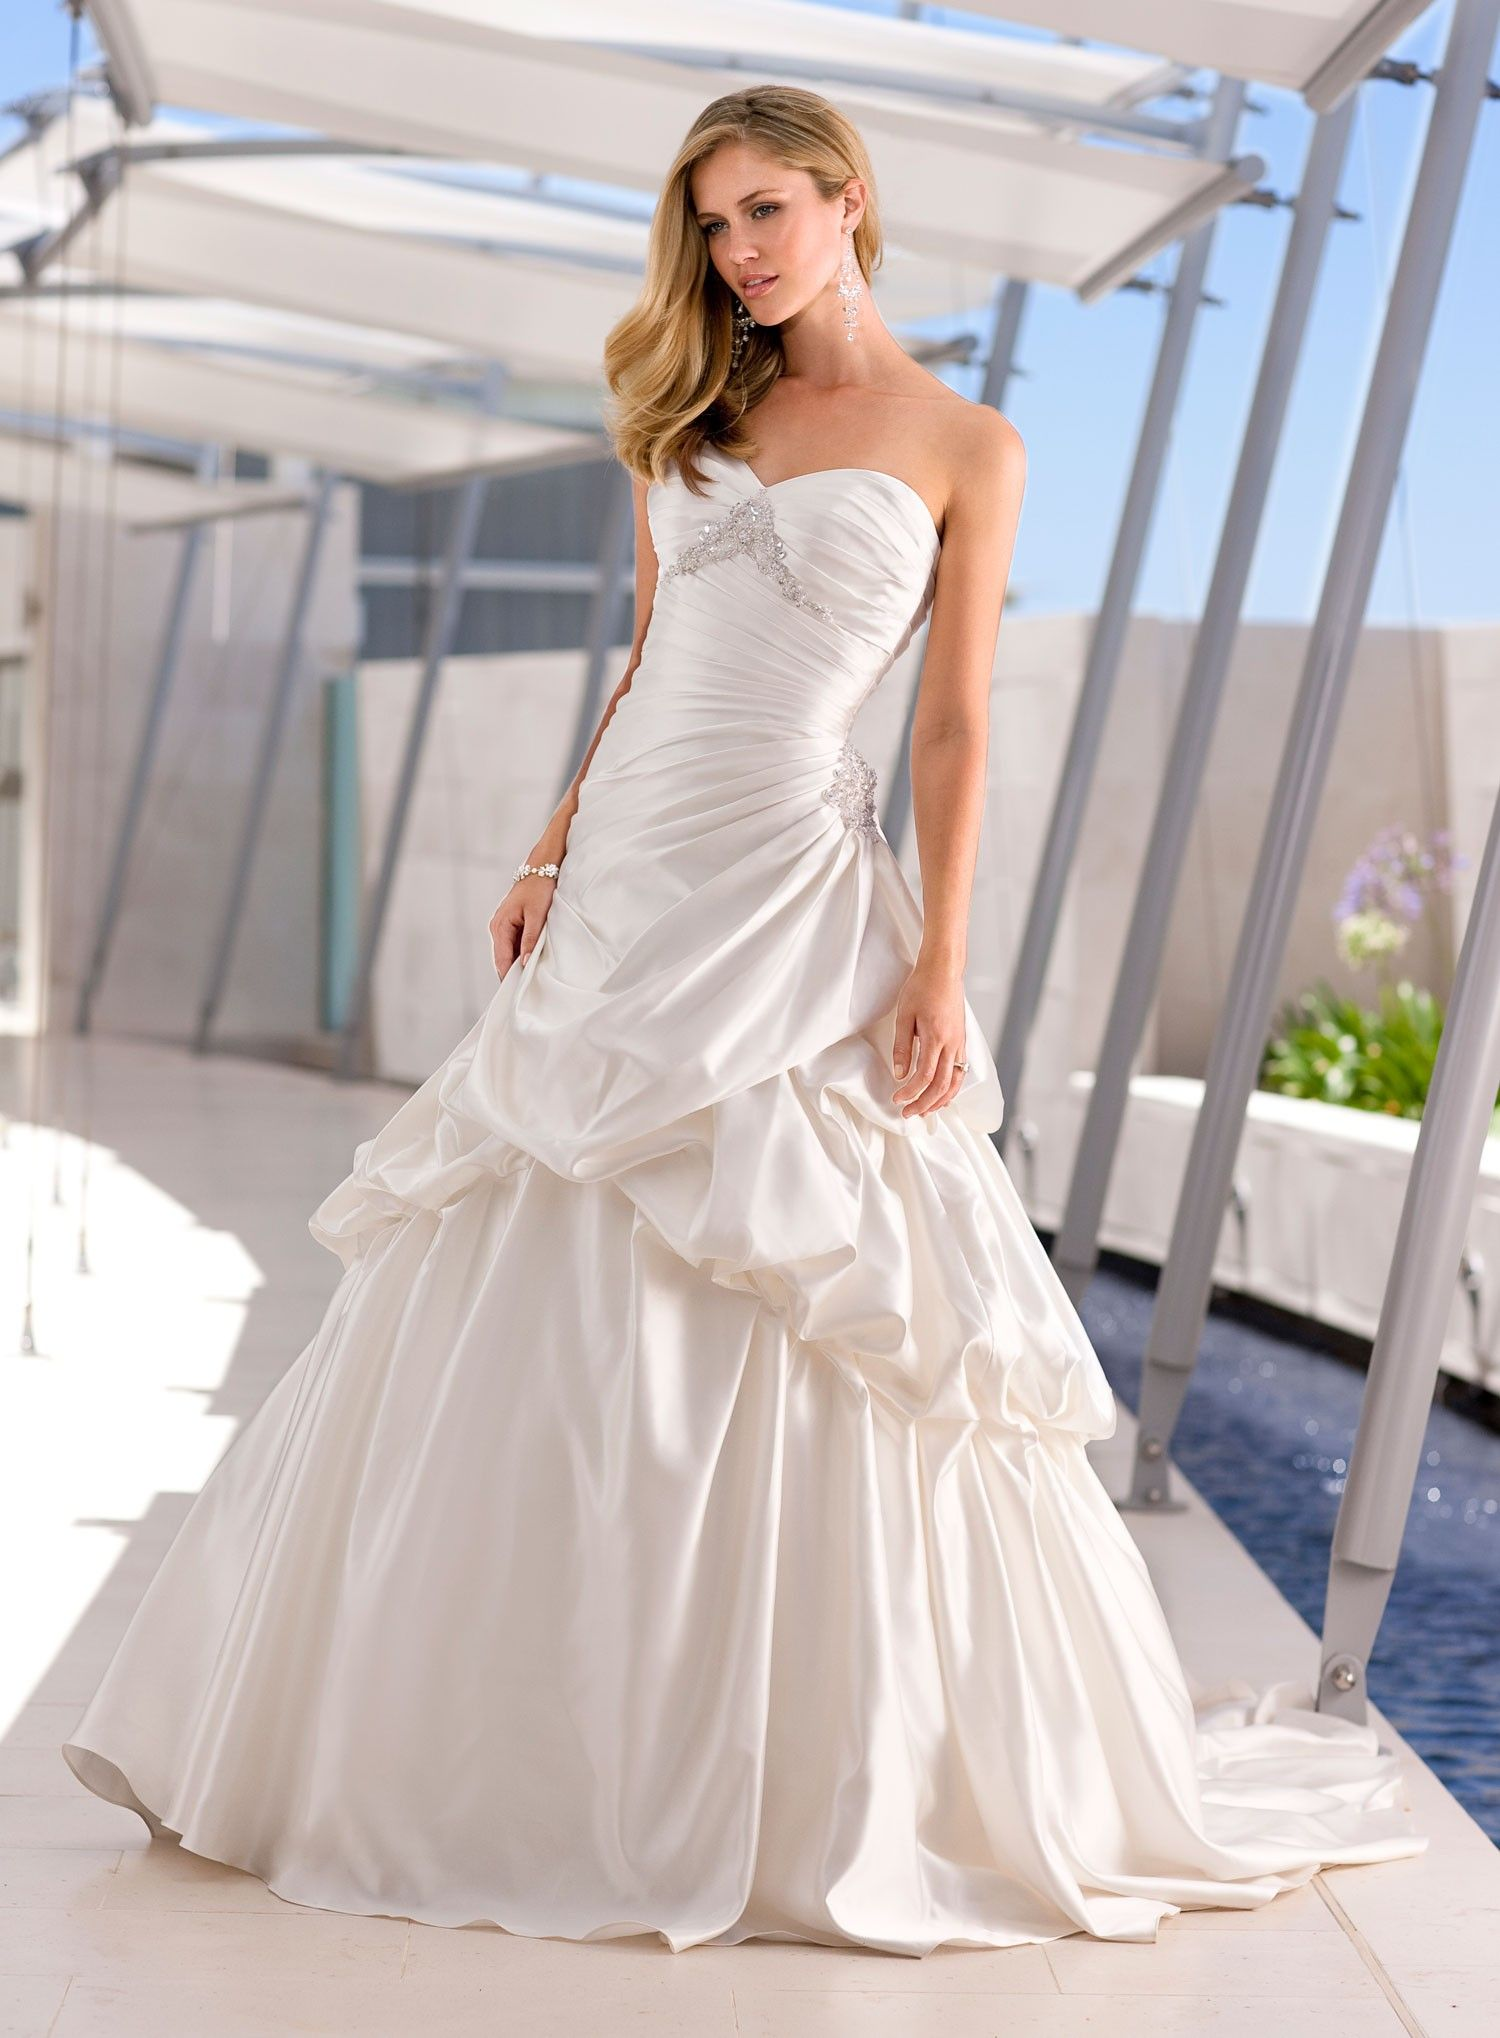 Best 25+ Affordable wedding dresses ideas on Pinterest | Fitted ...